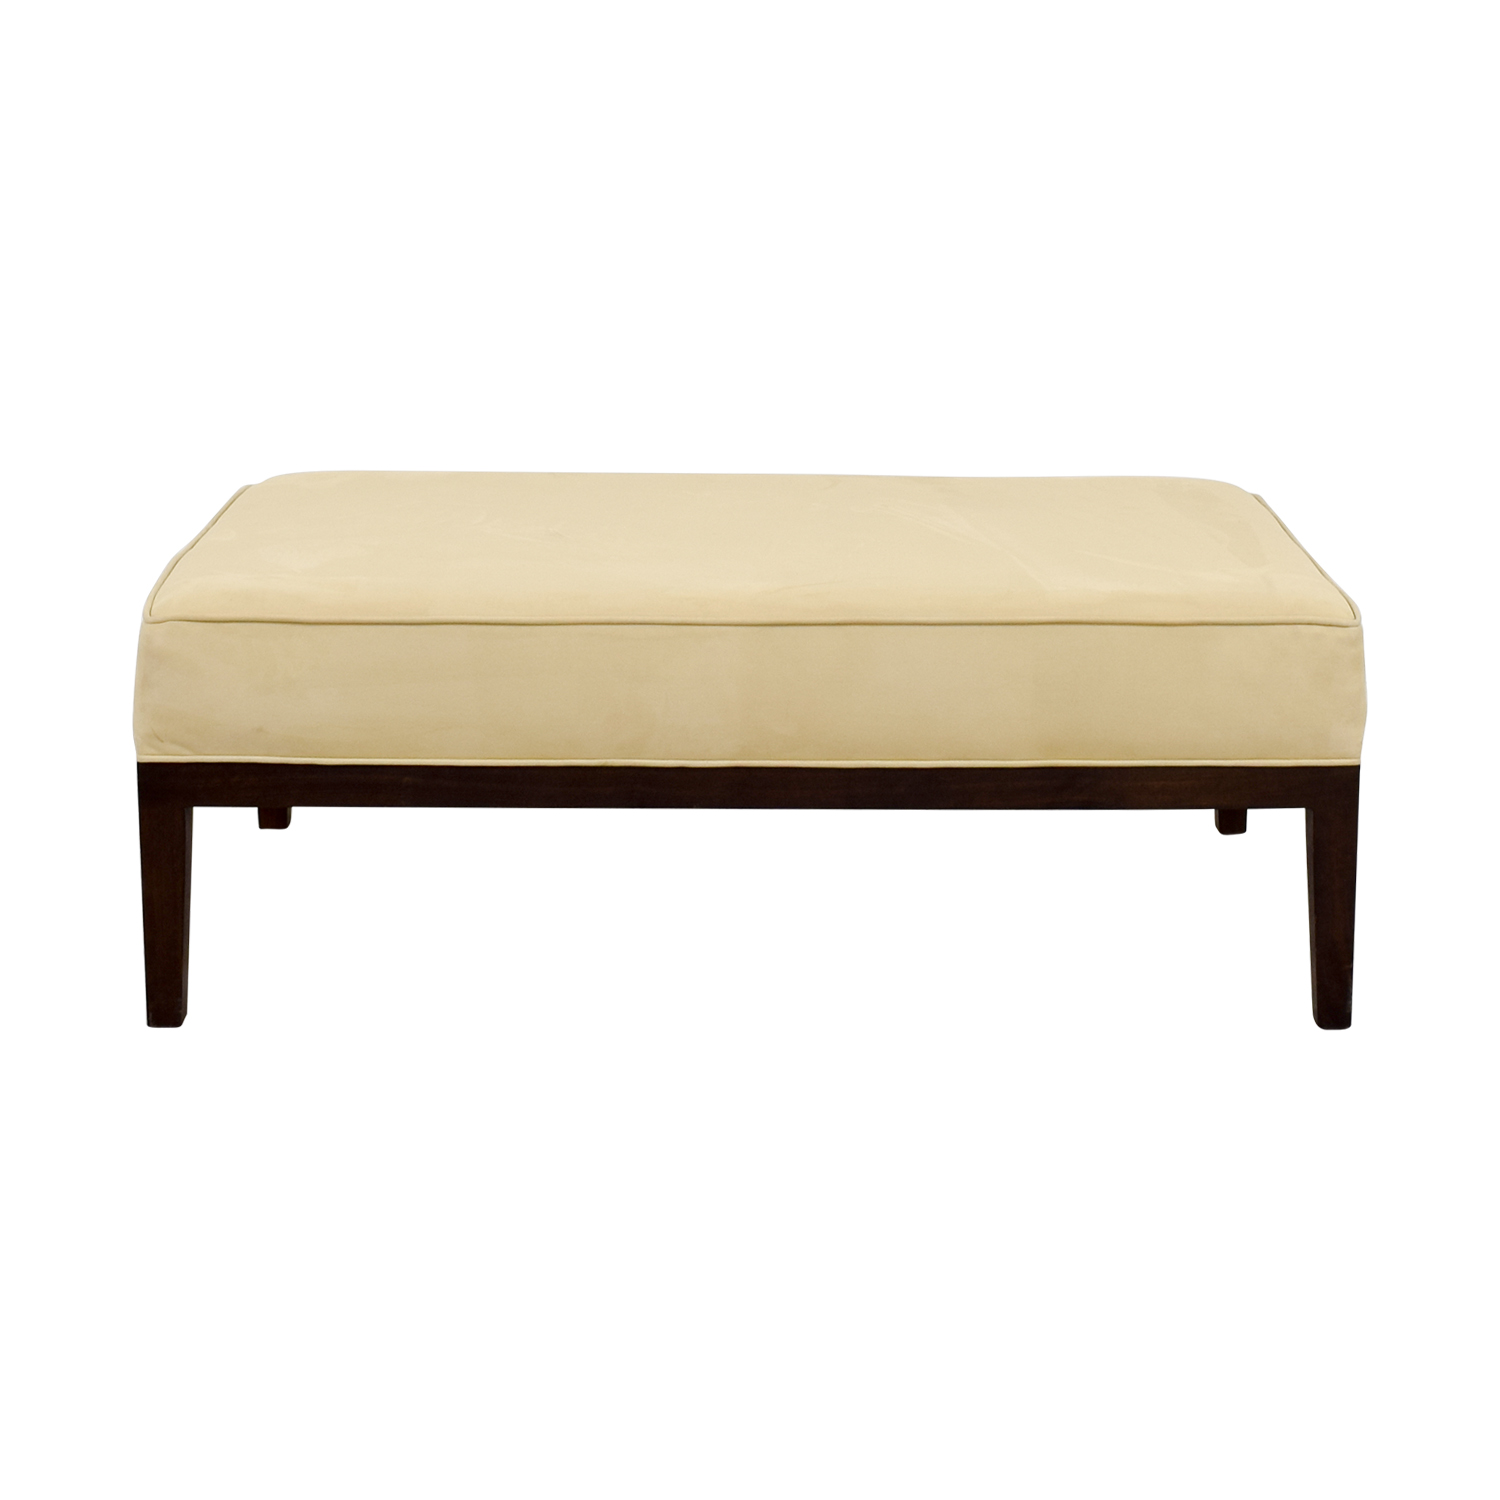 Tan Suede Bench Ottoman / Ottomans